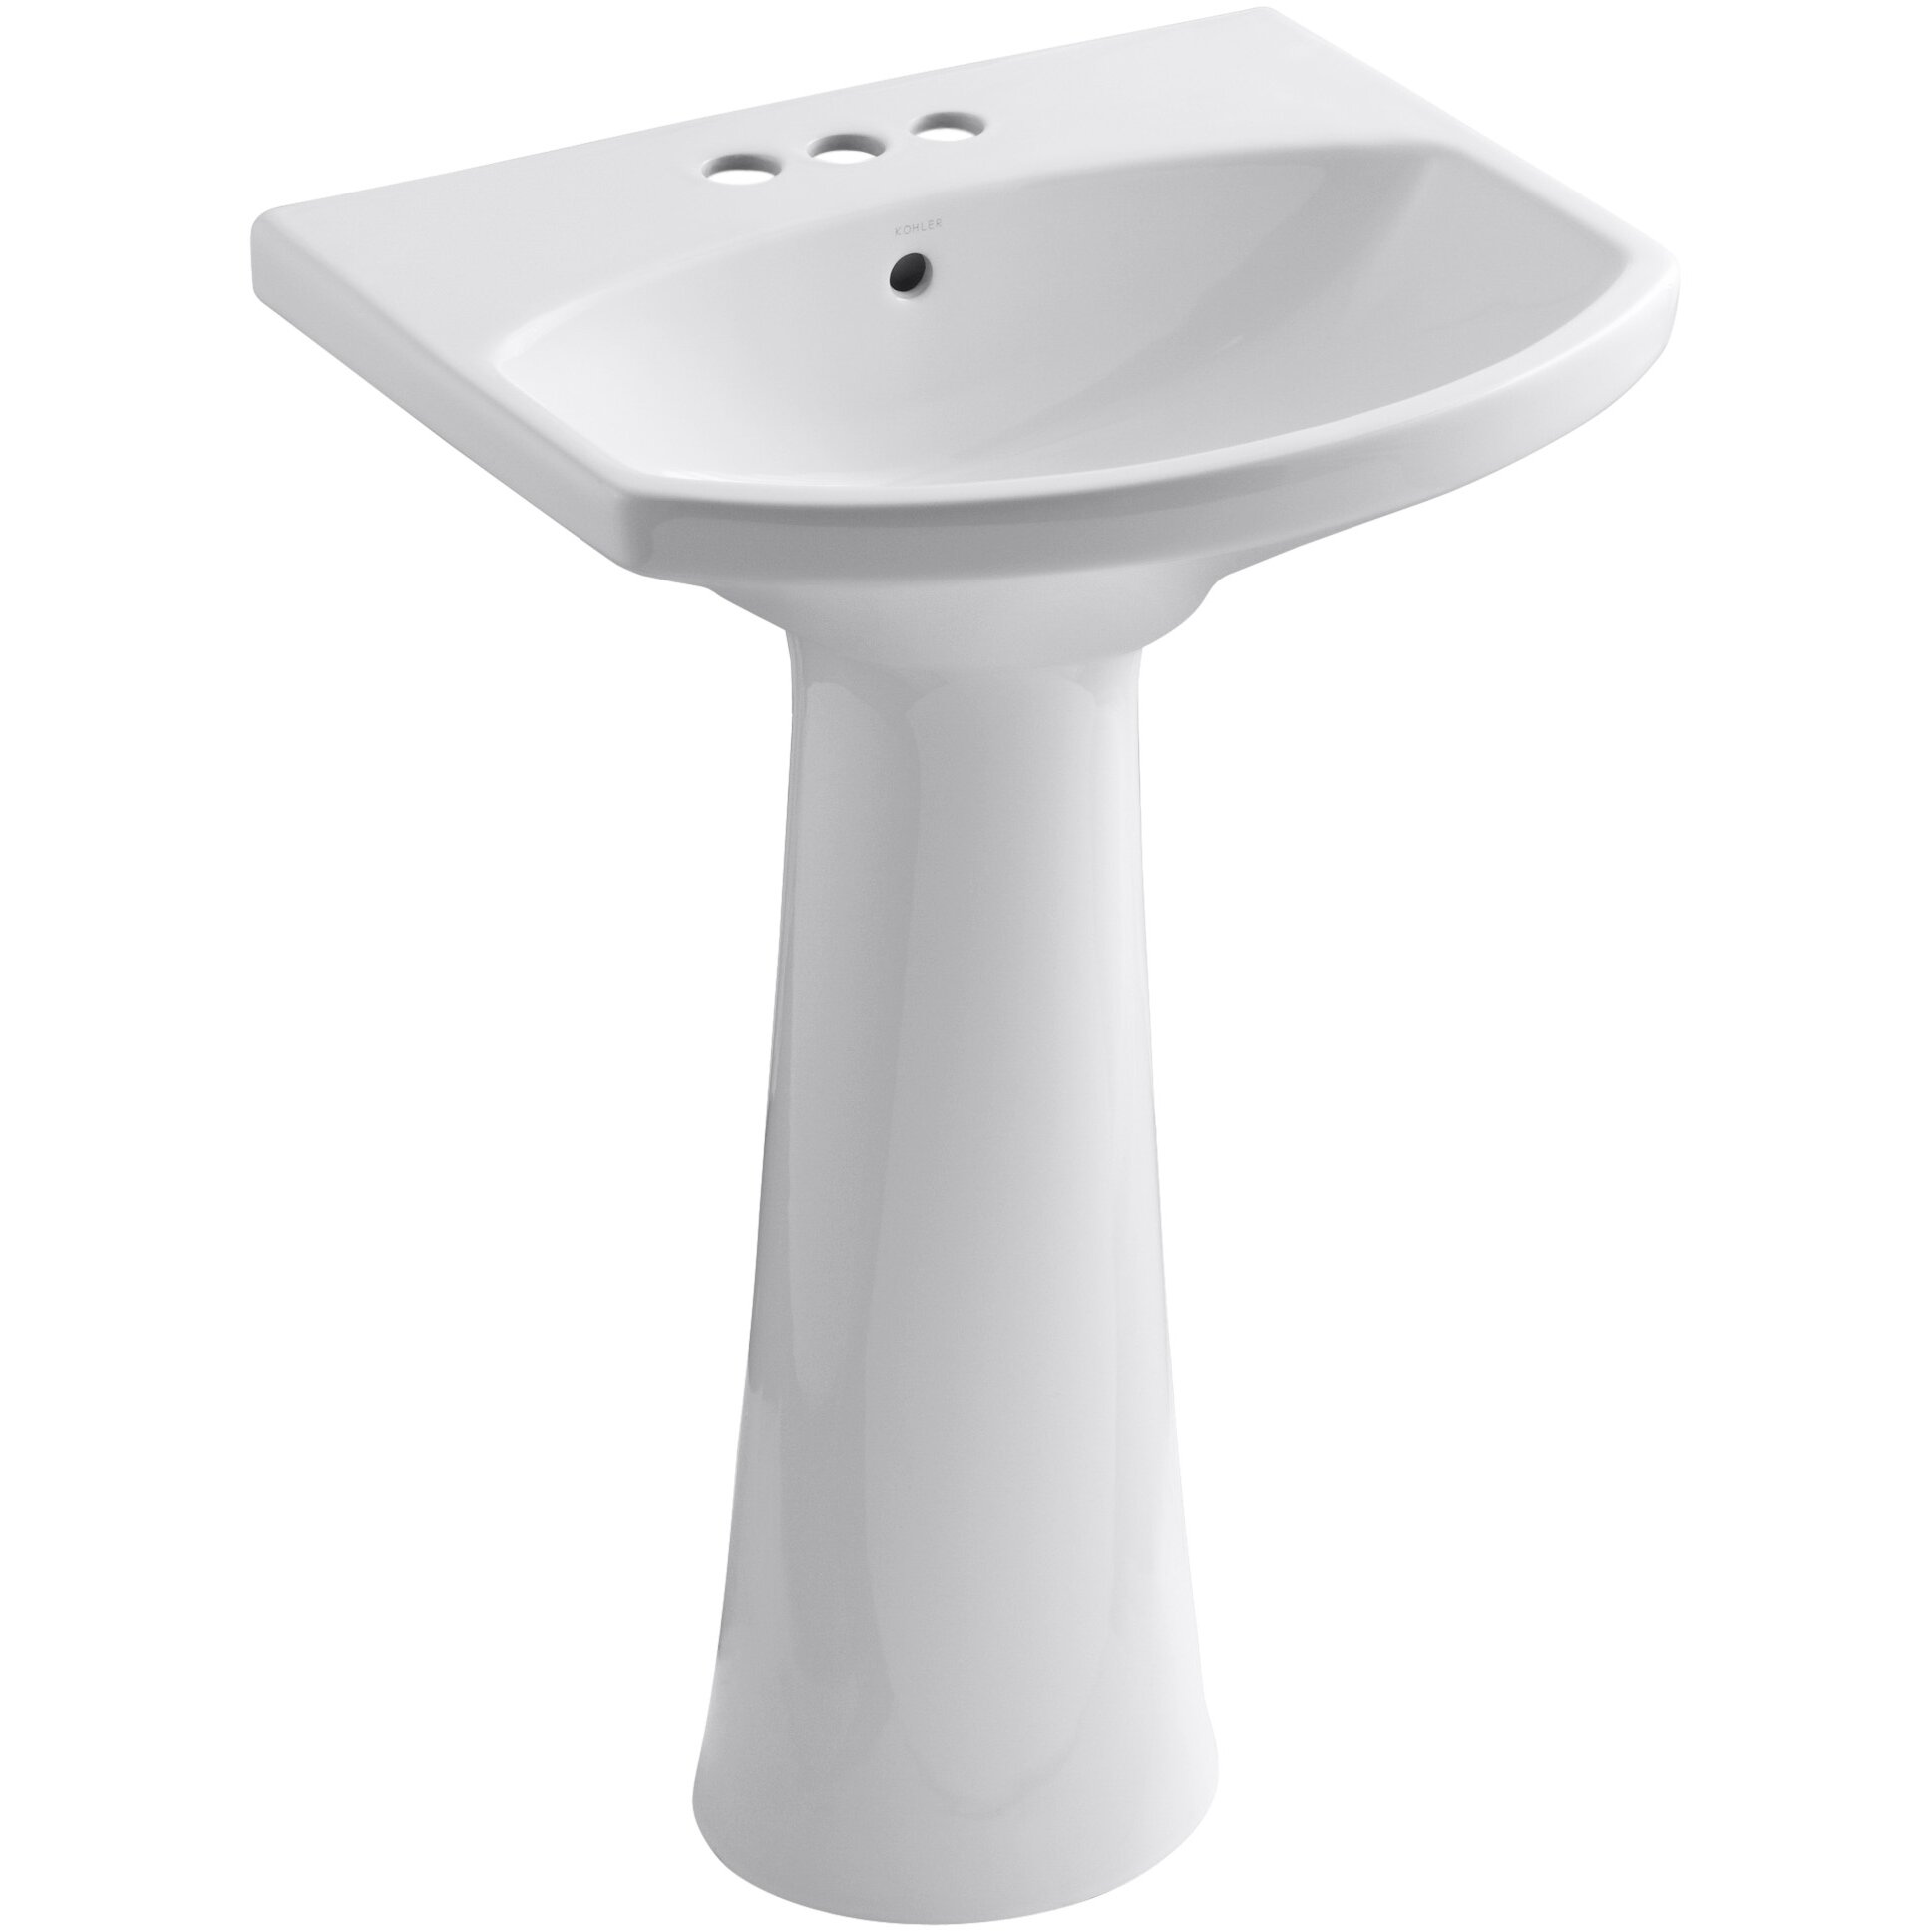 ... Pedestal Commercial Bathroom Sinks Kohler Part #: K-2362-8 SKU